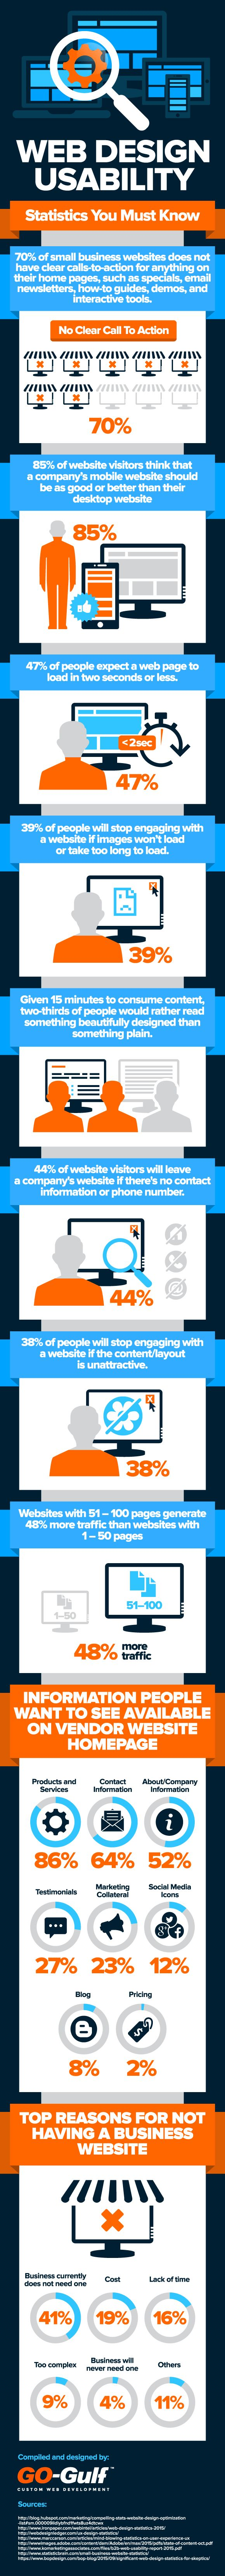 Web Design Usability Infographic